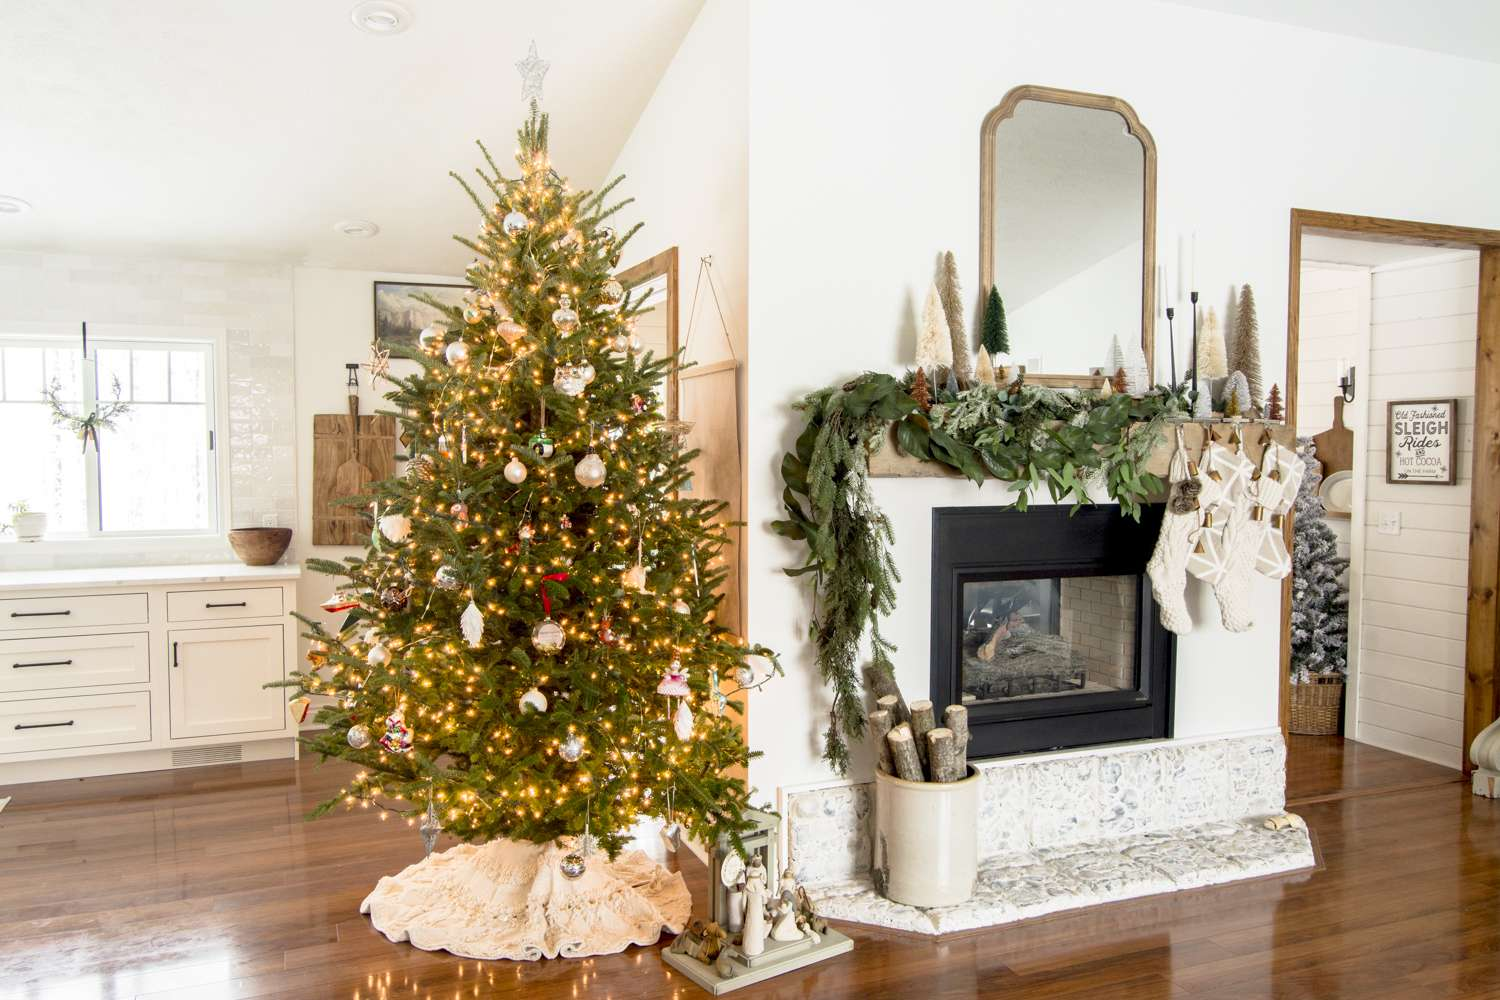 Choosing family Christmas tree decor can be both meaninful and elegant! Learn how to decorate your Christmas tree in a way the whole family will enjoy.